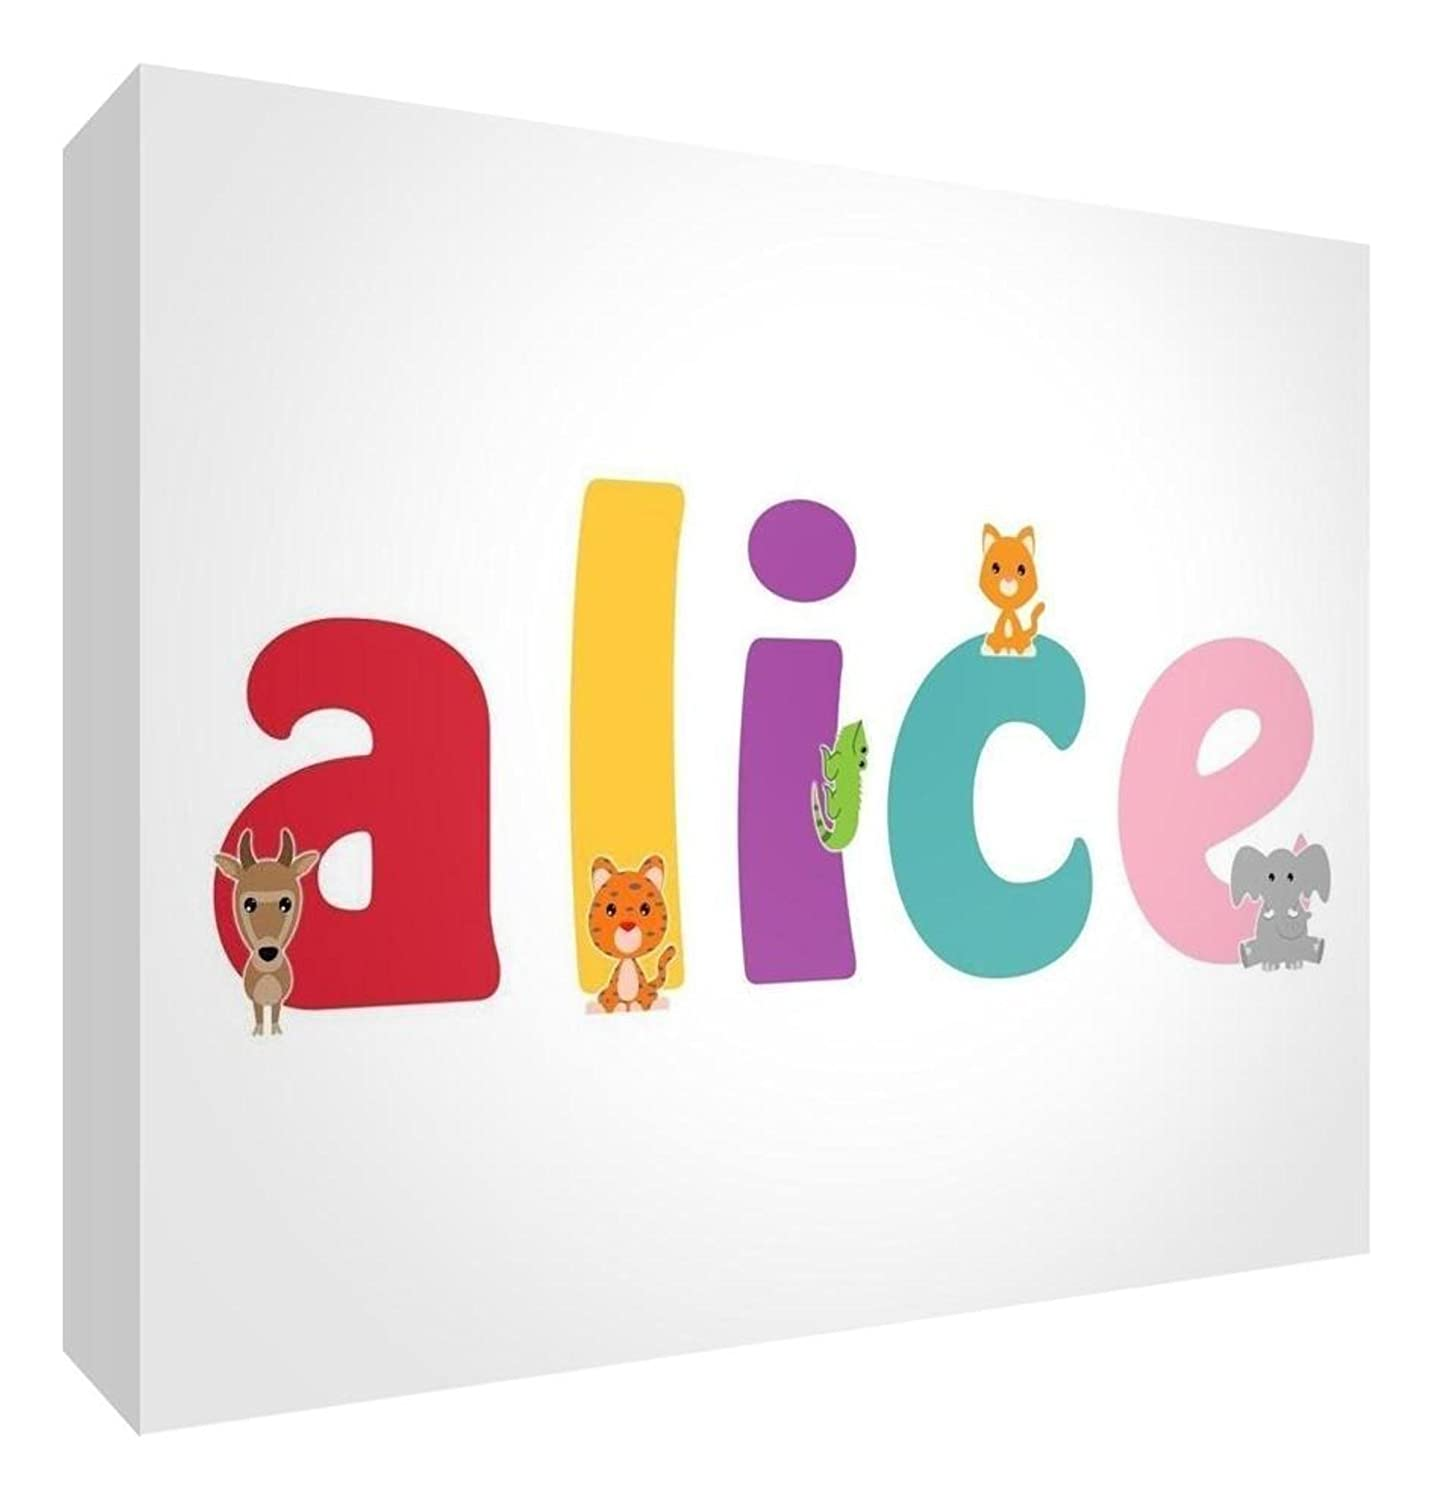 Feel Good Art Diamond Polished Keepsake//Token Cute Illustrations and Personalised with Girls Name 10.5 x 7.4 x 2 cm, Small, Alice